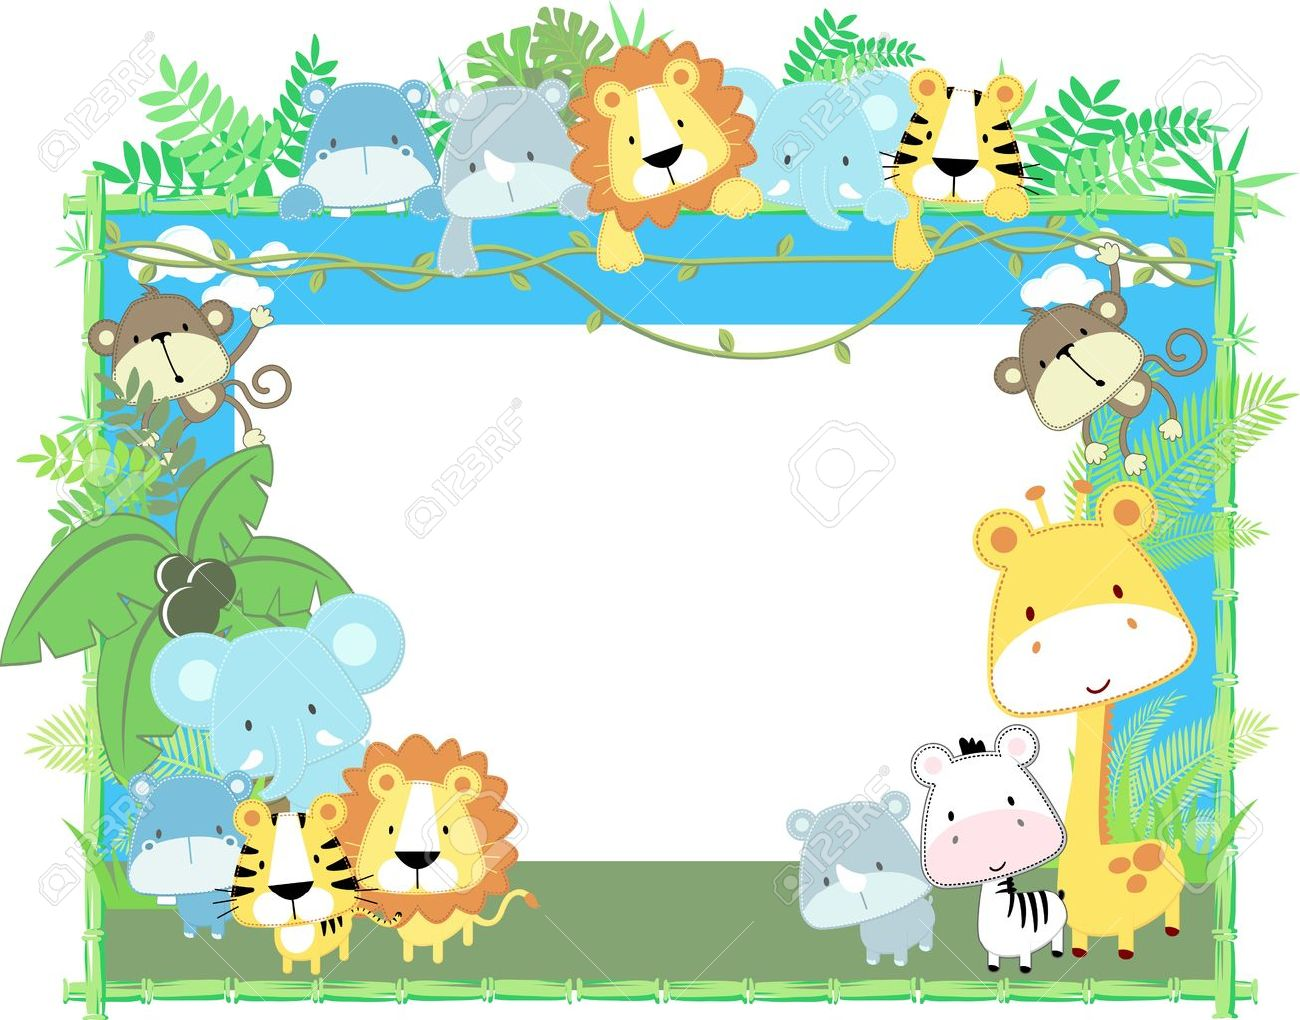 Safari Animal Wallpaper Wall Art Border Jungle Zoo Decal Sticker ...